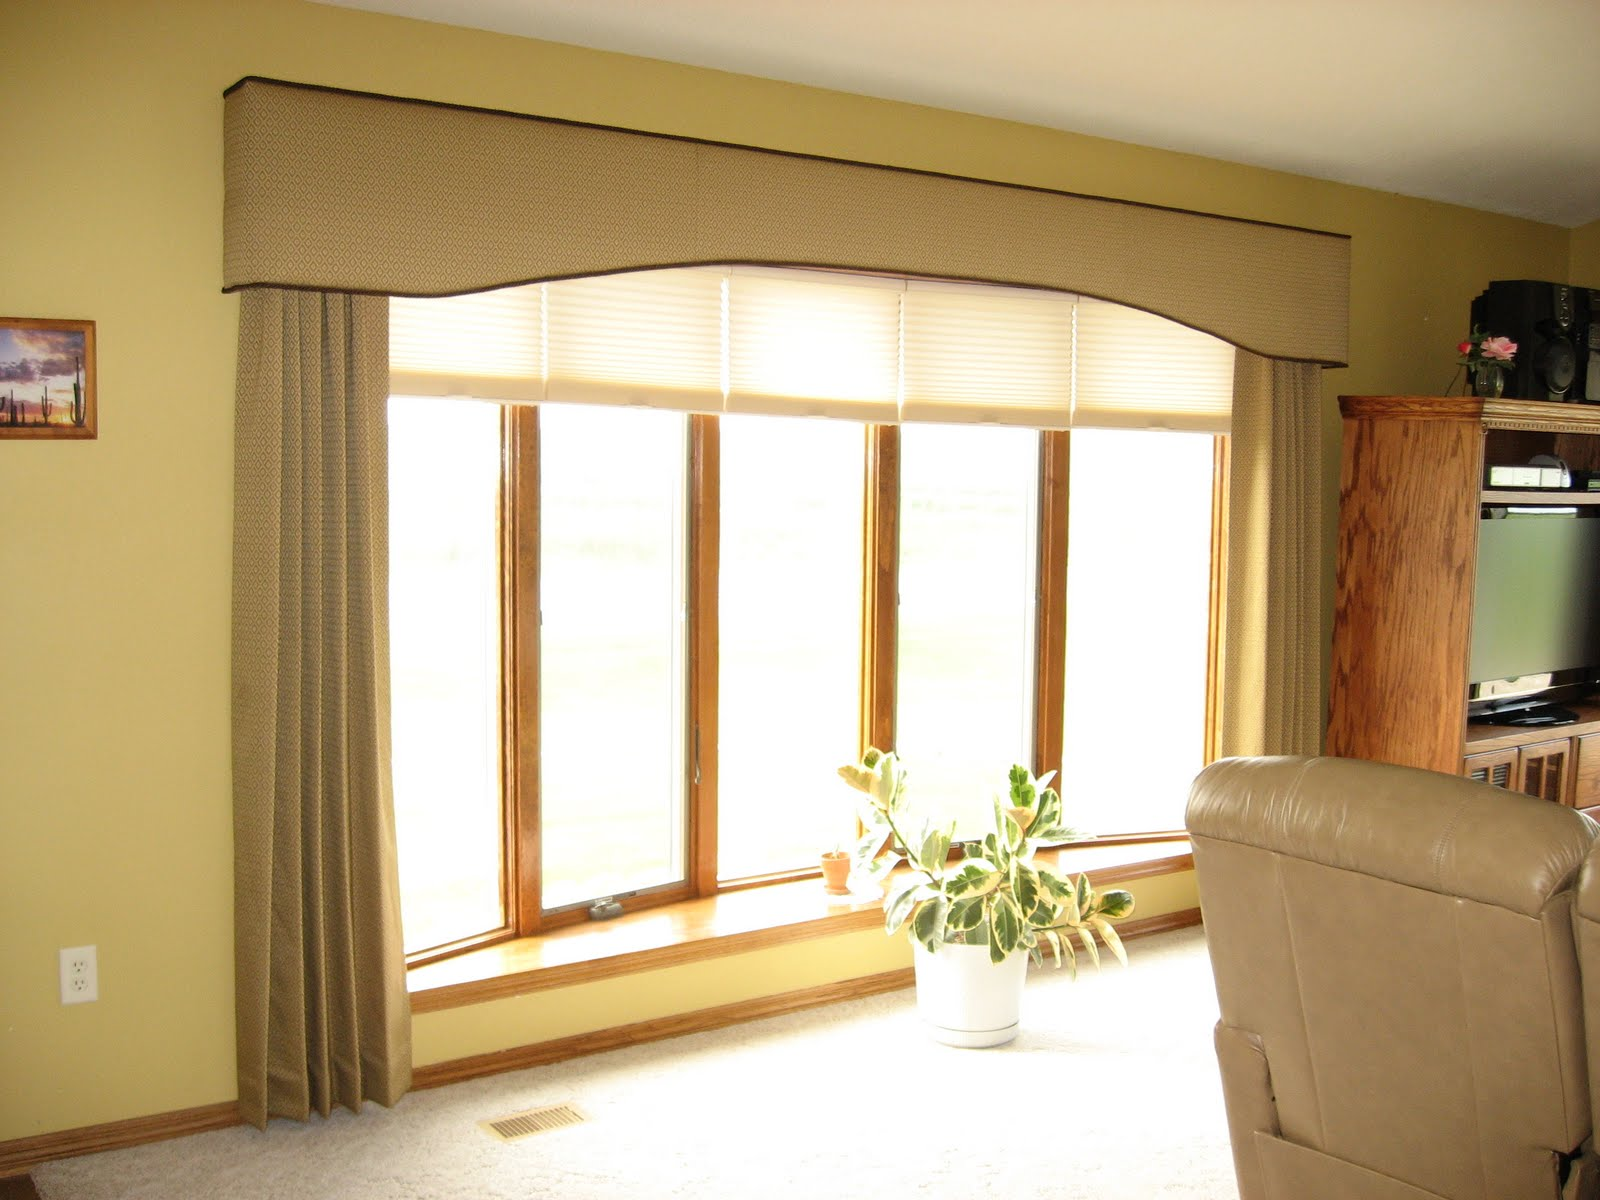 Window Fashions An Quot Eyebrow Shaped Quot Cornice Board With